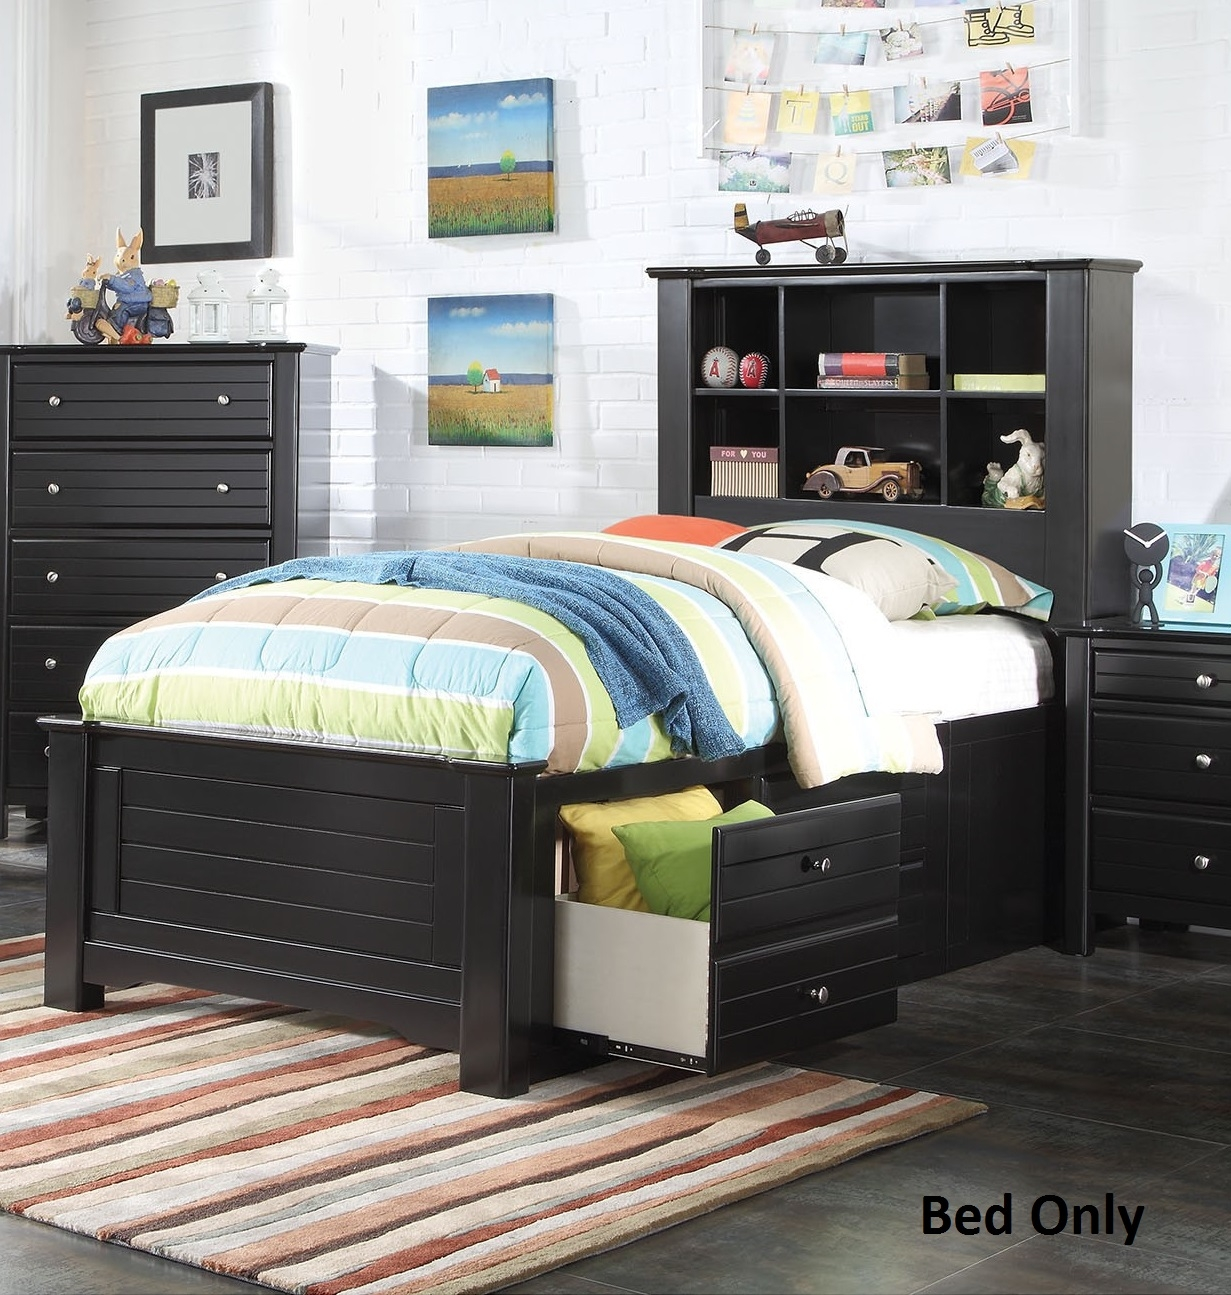 Mallowsea 30390T Twin Size Bed with Storage Rail Drawers  6 Compartment Bookcase Headboard  Low Profile Footboard and Pine Wood Construction in Black Finish